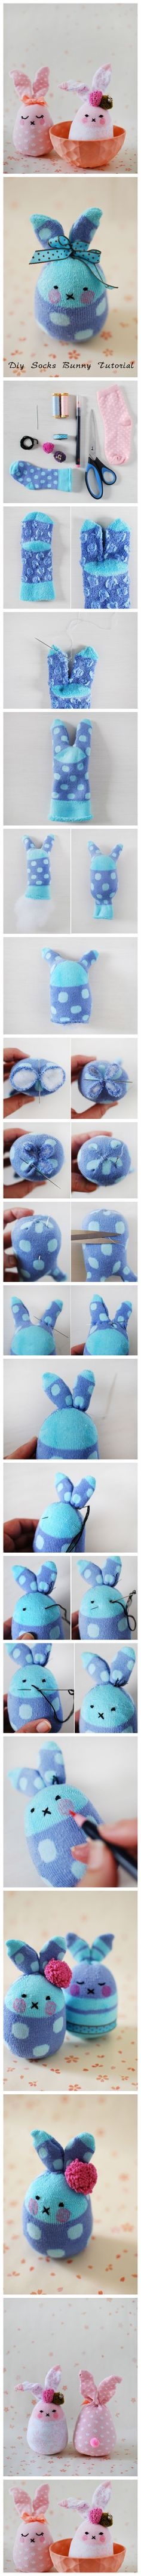 tiny cute kawaii easter bunny rabbit plushie pals to fit in eggs to make for friends happy easter everyone Bricolage Tutorial Lapin Chaussettes